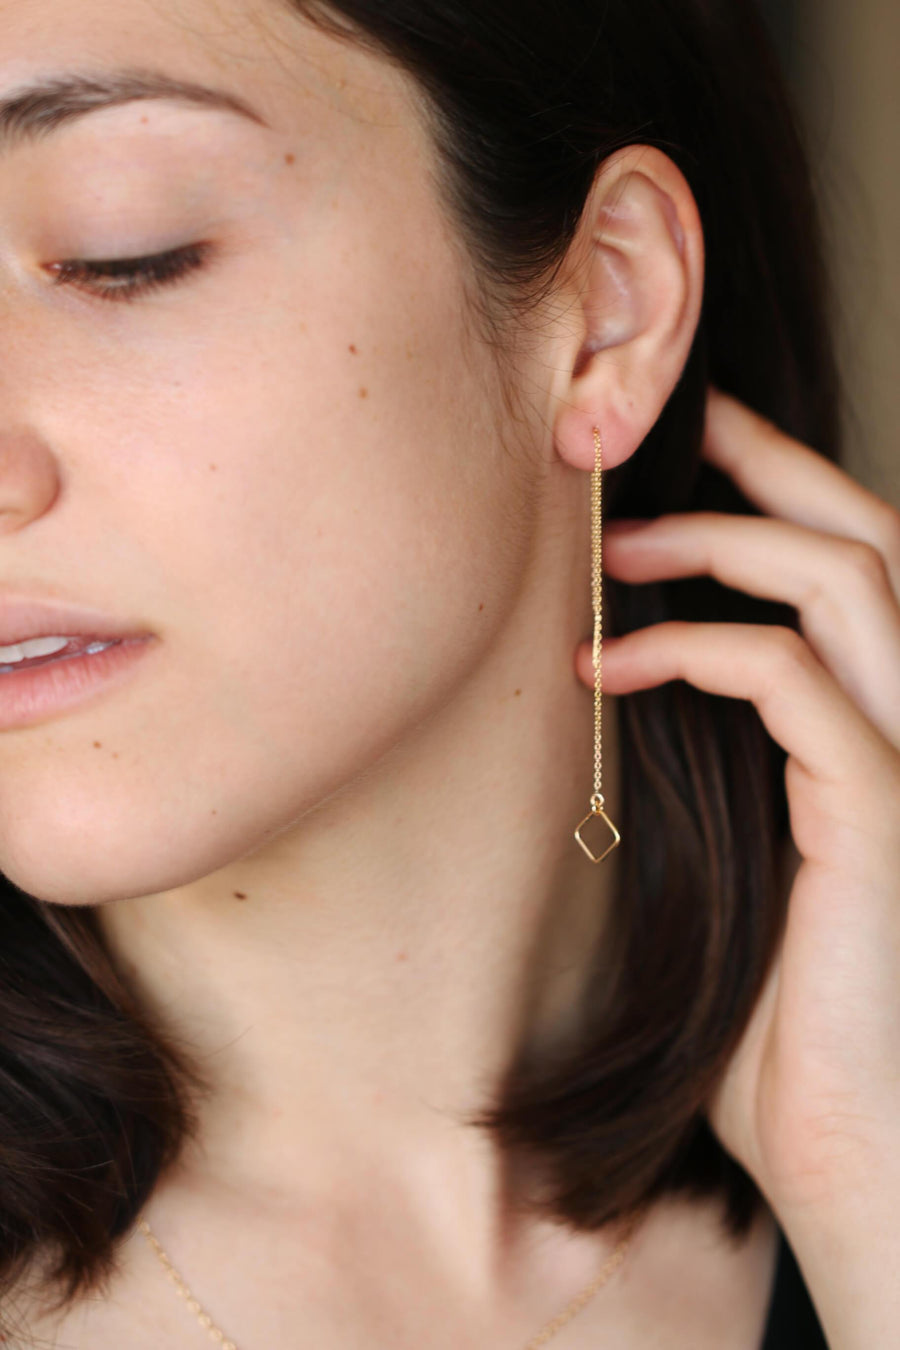 Geometric Ear Threaders | 14k gold filled square threader earrings